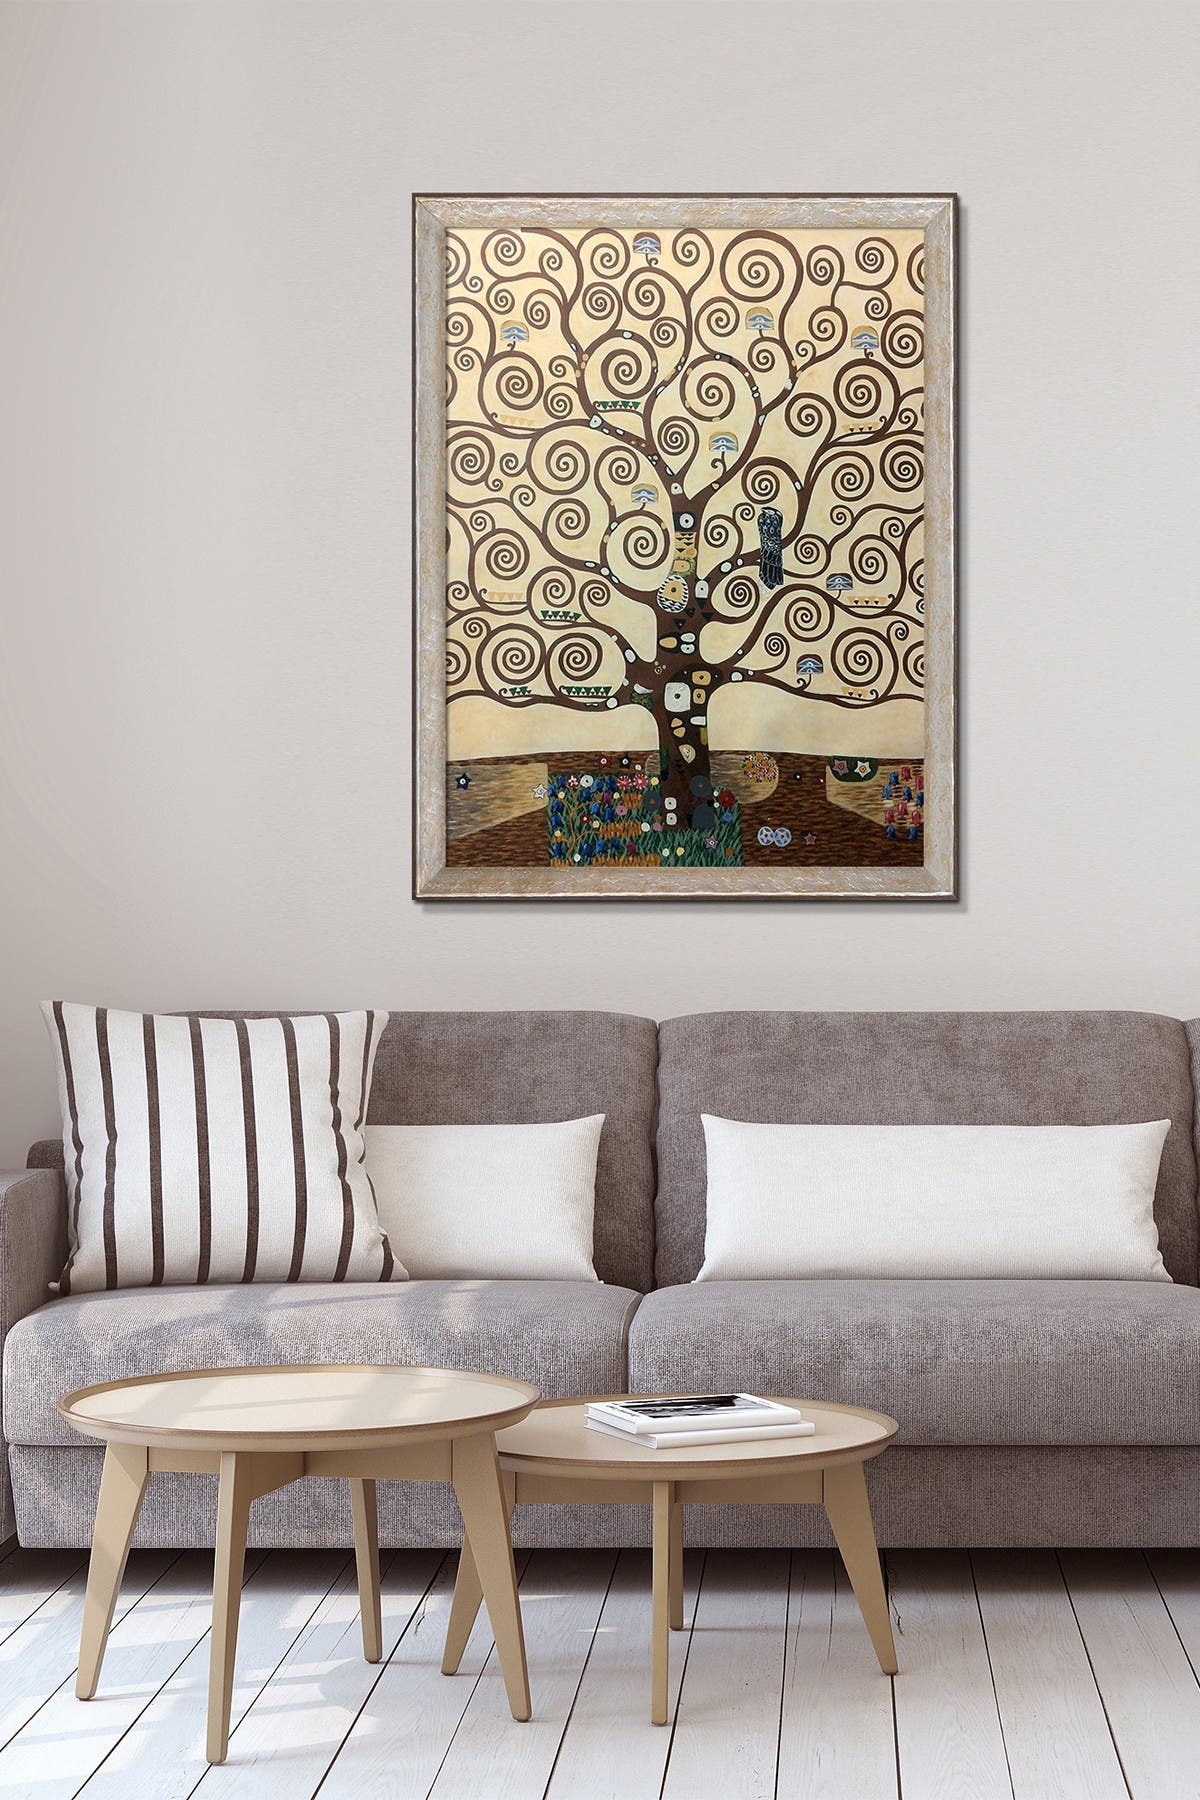 Image of Overstock Art Tree of Life - Framed Oil Reproduction of an Original Painting by Gustav Klimt